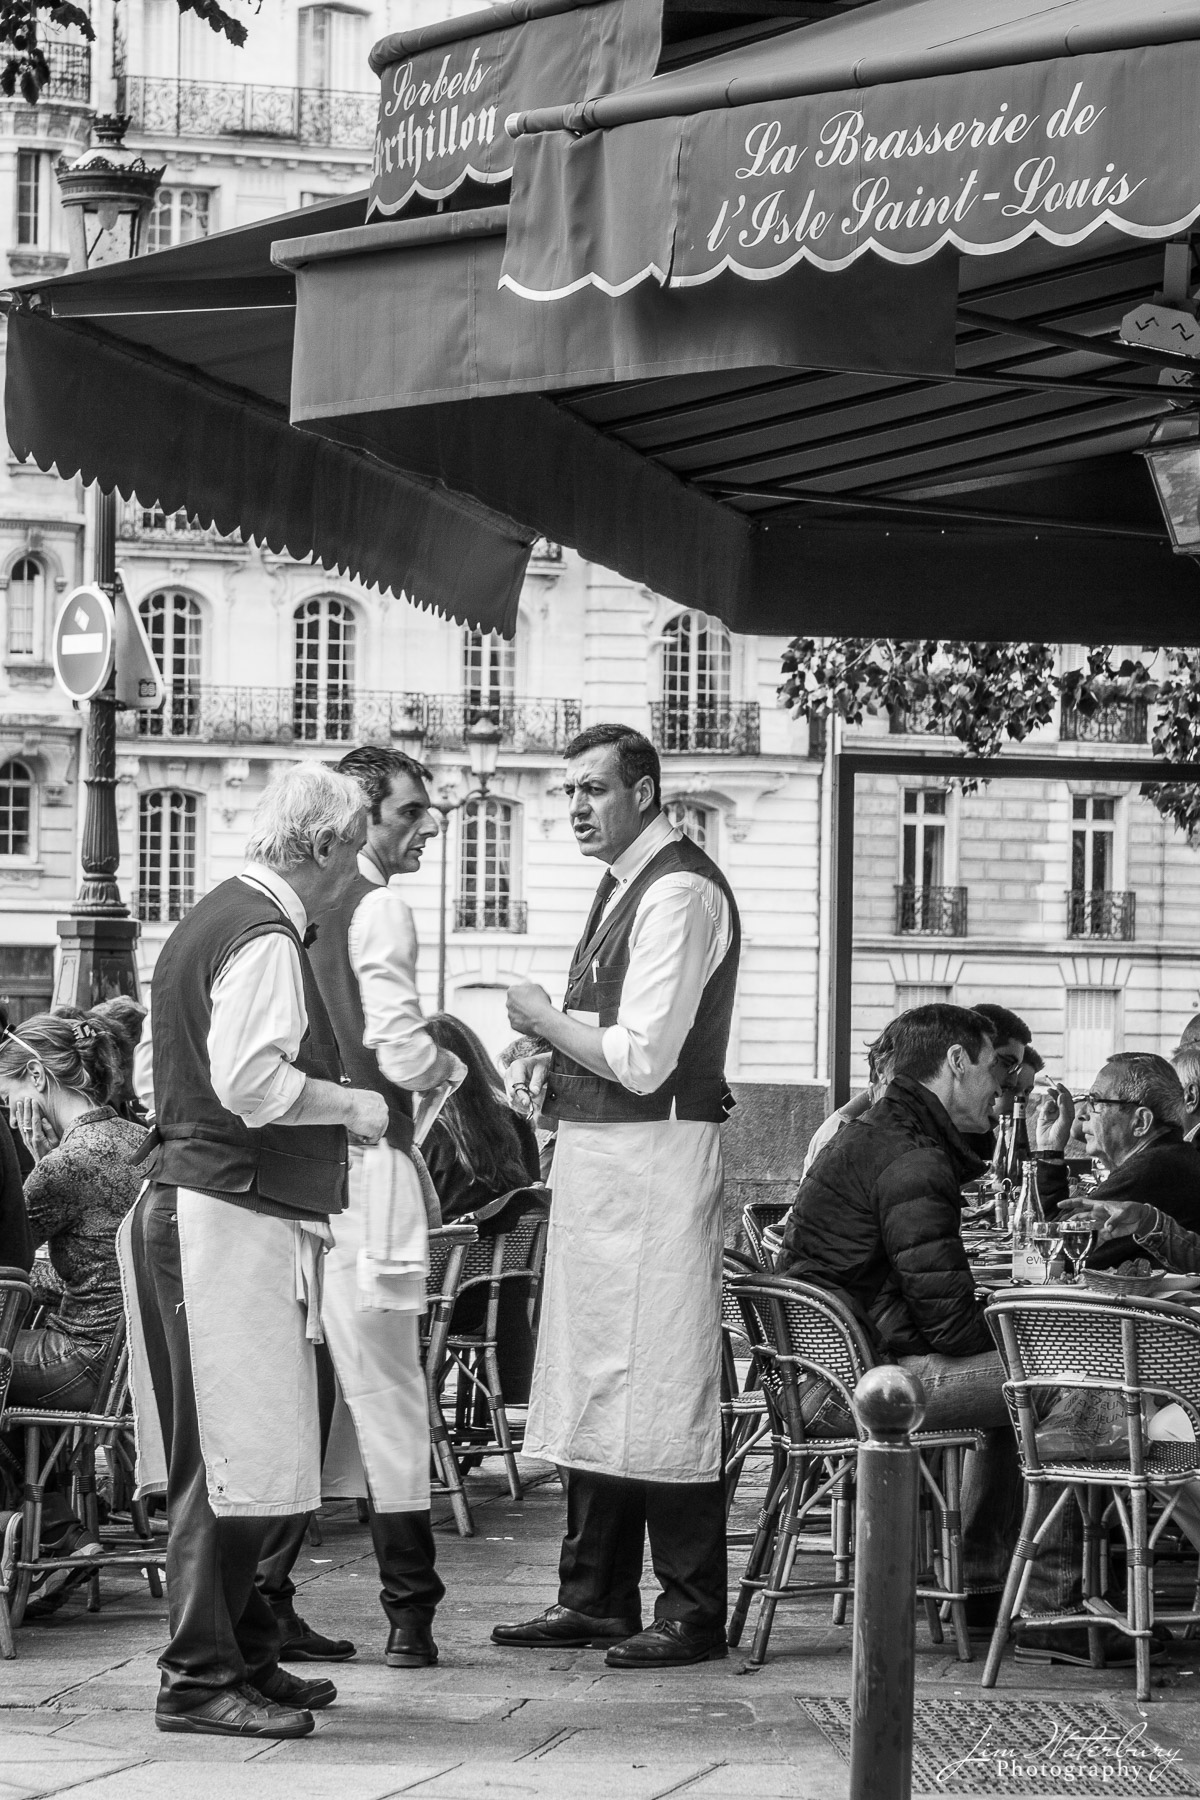 Waiters talk on the sidewalk in front of the Brasserie de l'Ile Saint-Louis, Paris. Black & white.